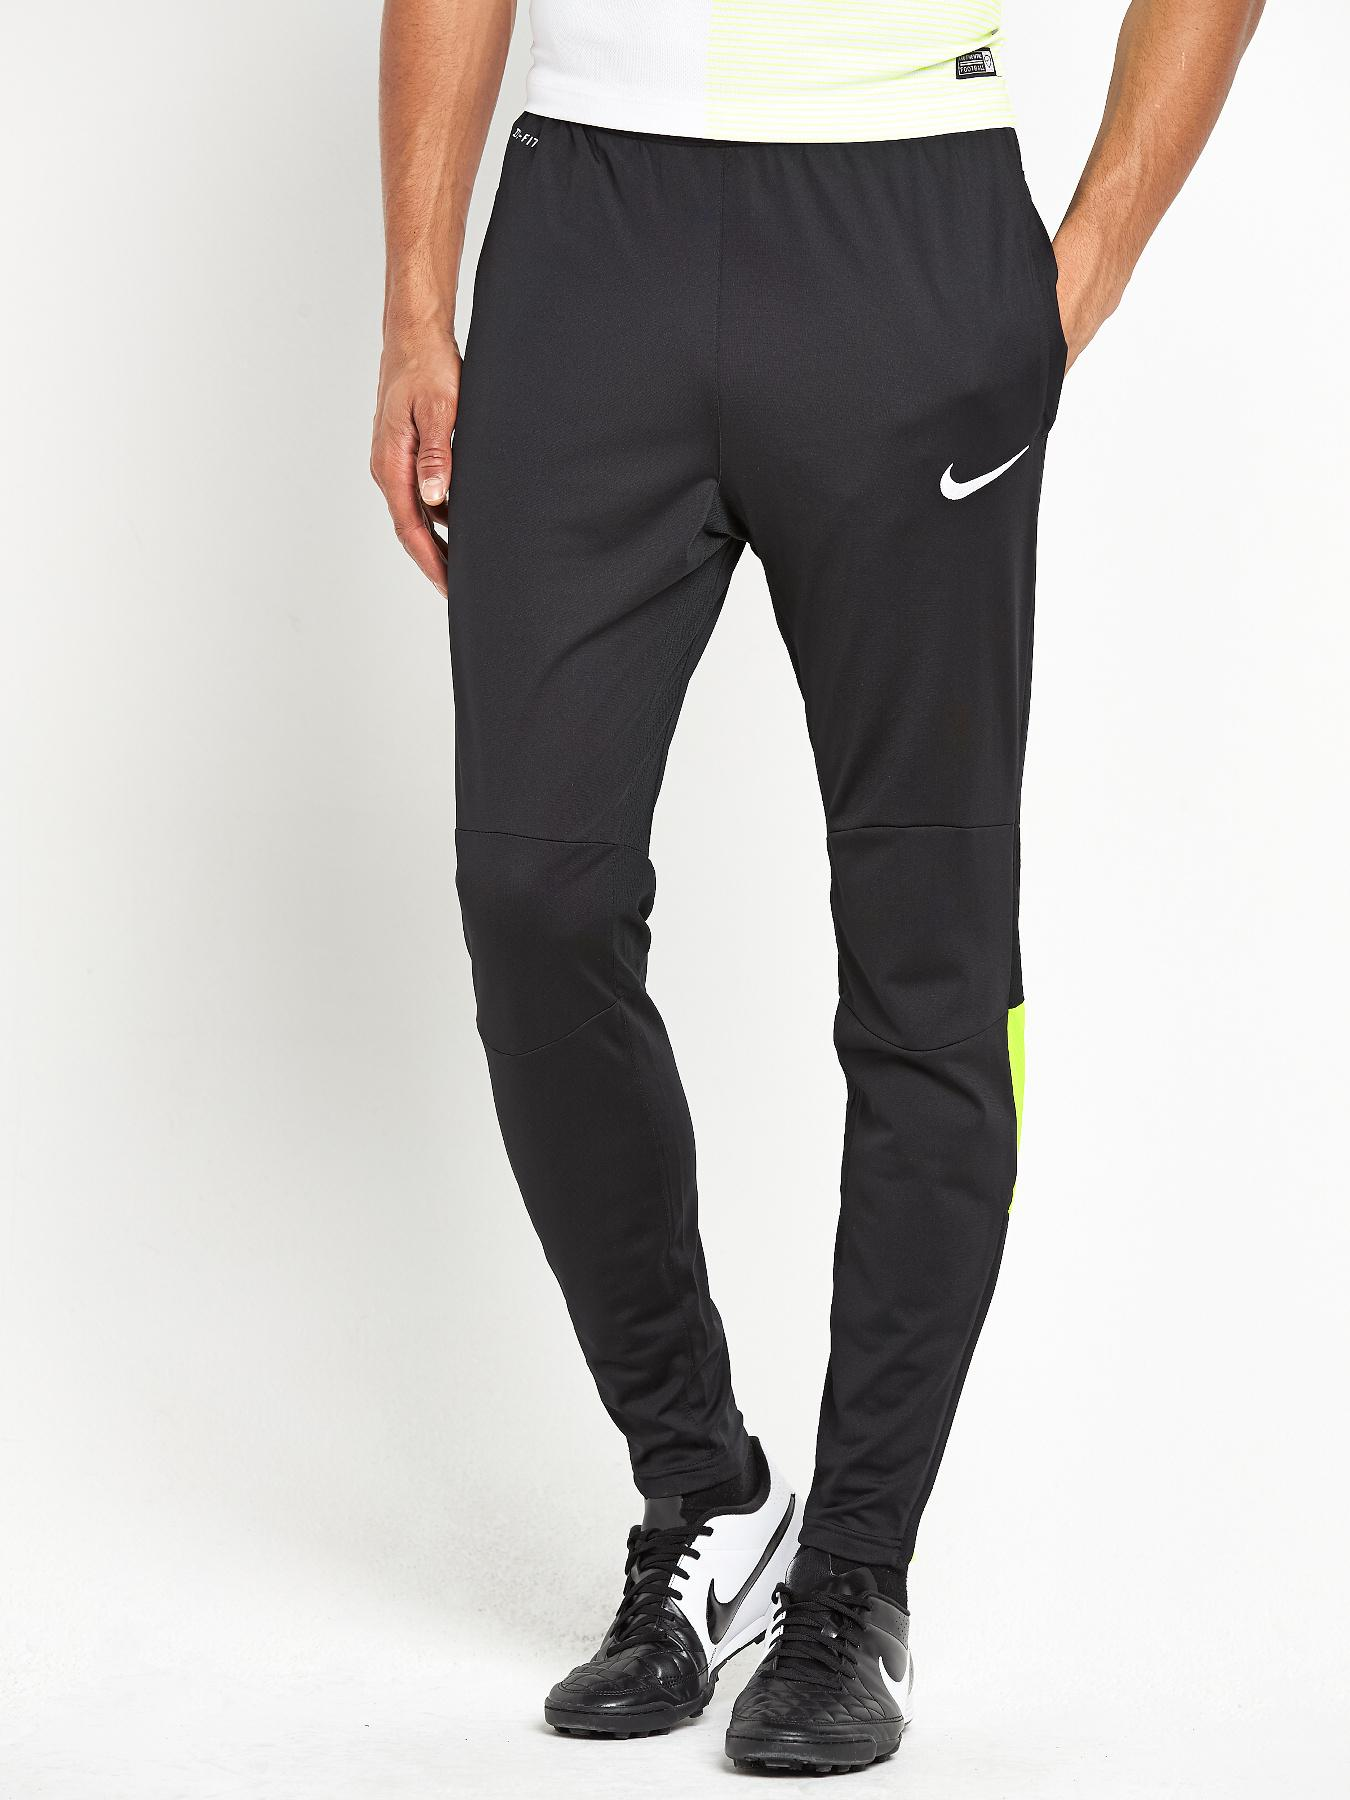 Nike Mens Squad Tech Pants - Black, Black